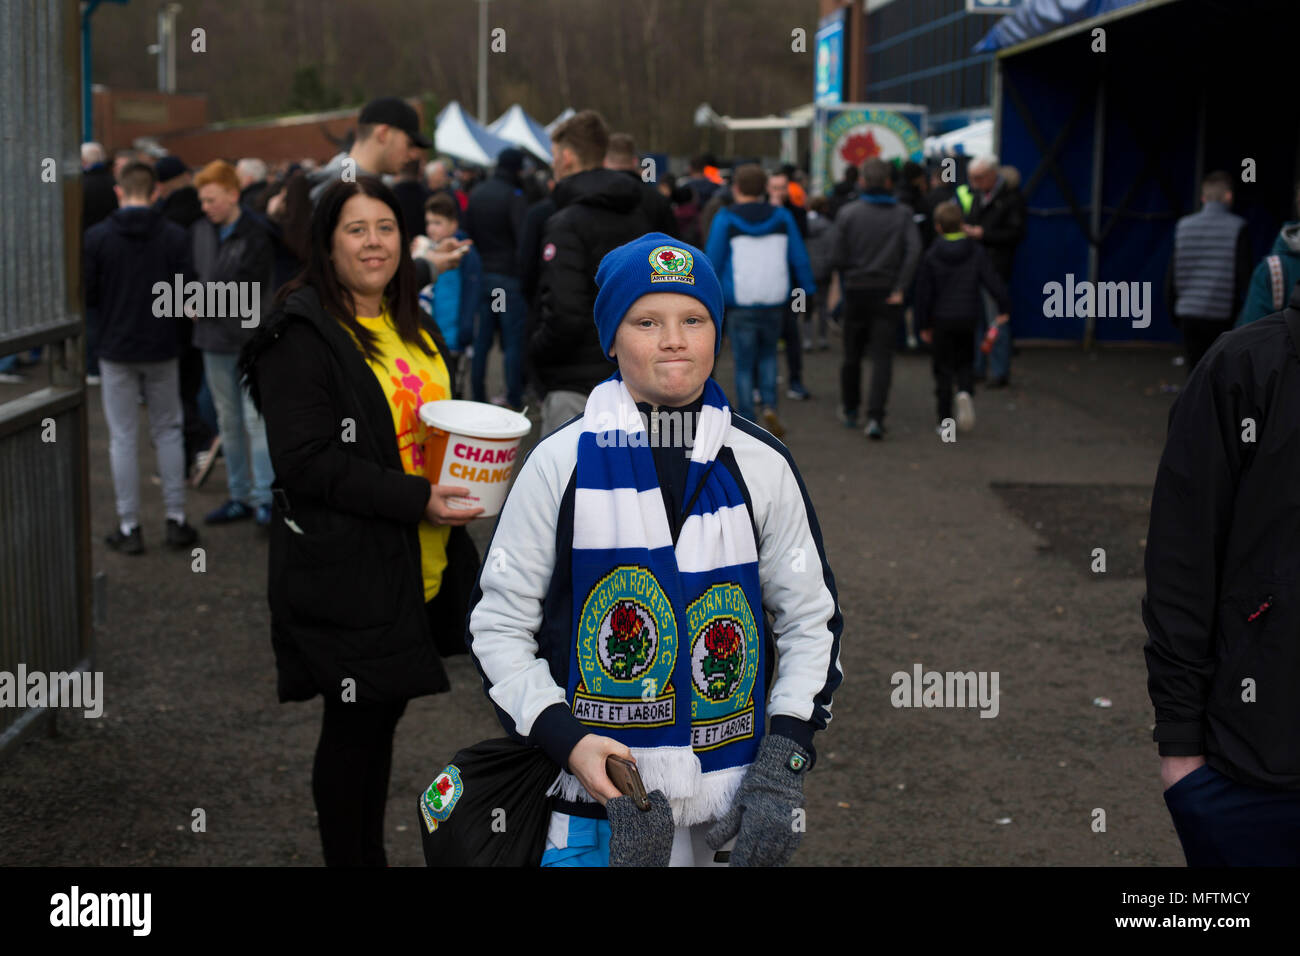 A fan walking round the ground before Blackburn Rovers played Shrewsbury Town in a Sky Bet League One fixture at Ewood Park. Both team were in the top three in the division at the start of the game. Blackburn won the match by 3 goals to 1, watched by a crowd of 13,579. - Stock Image